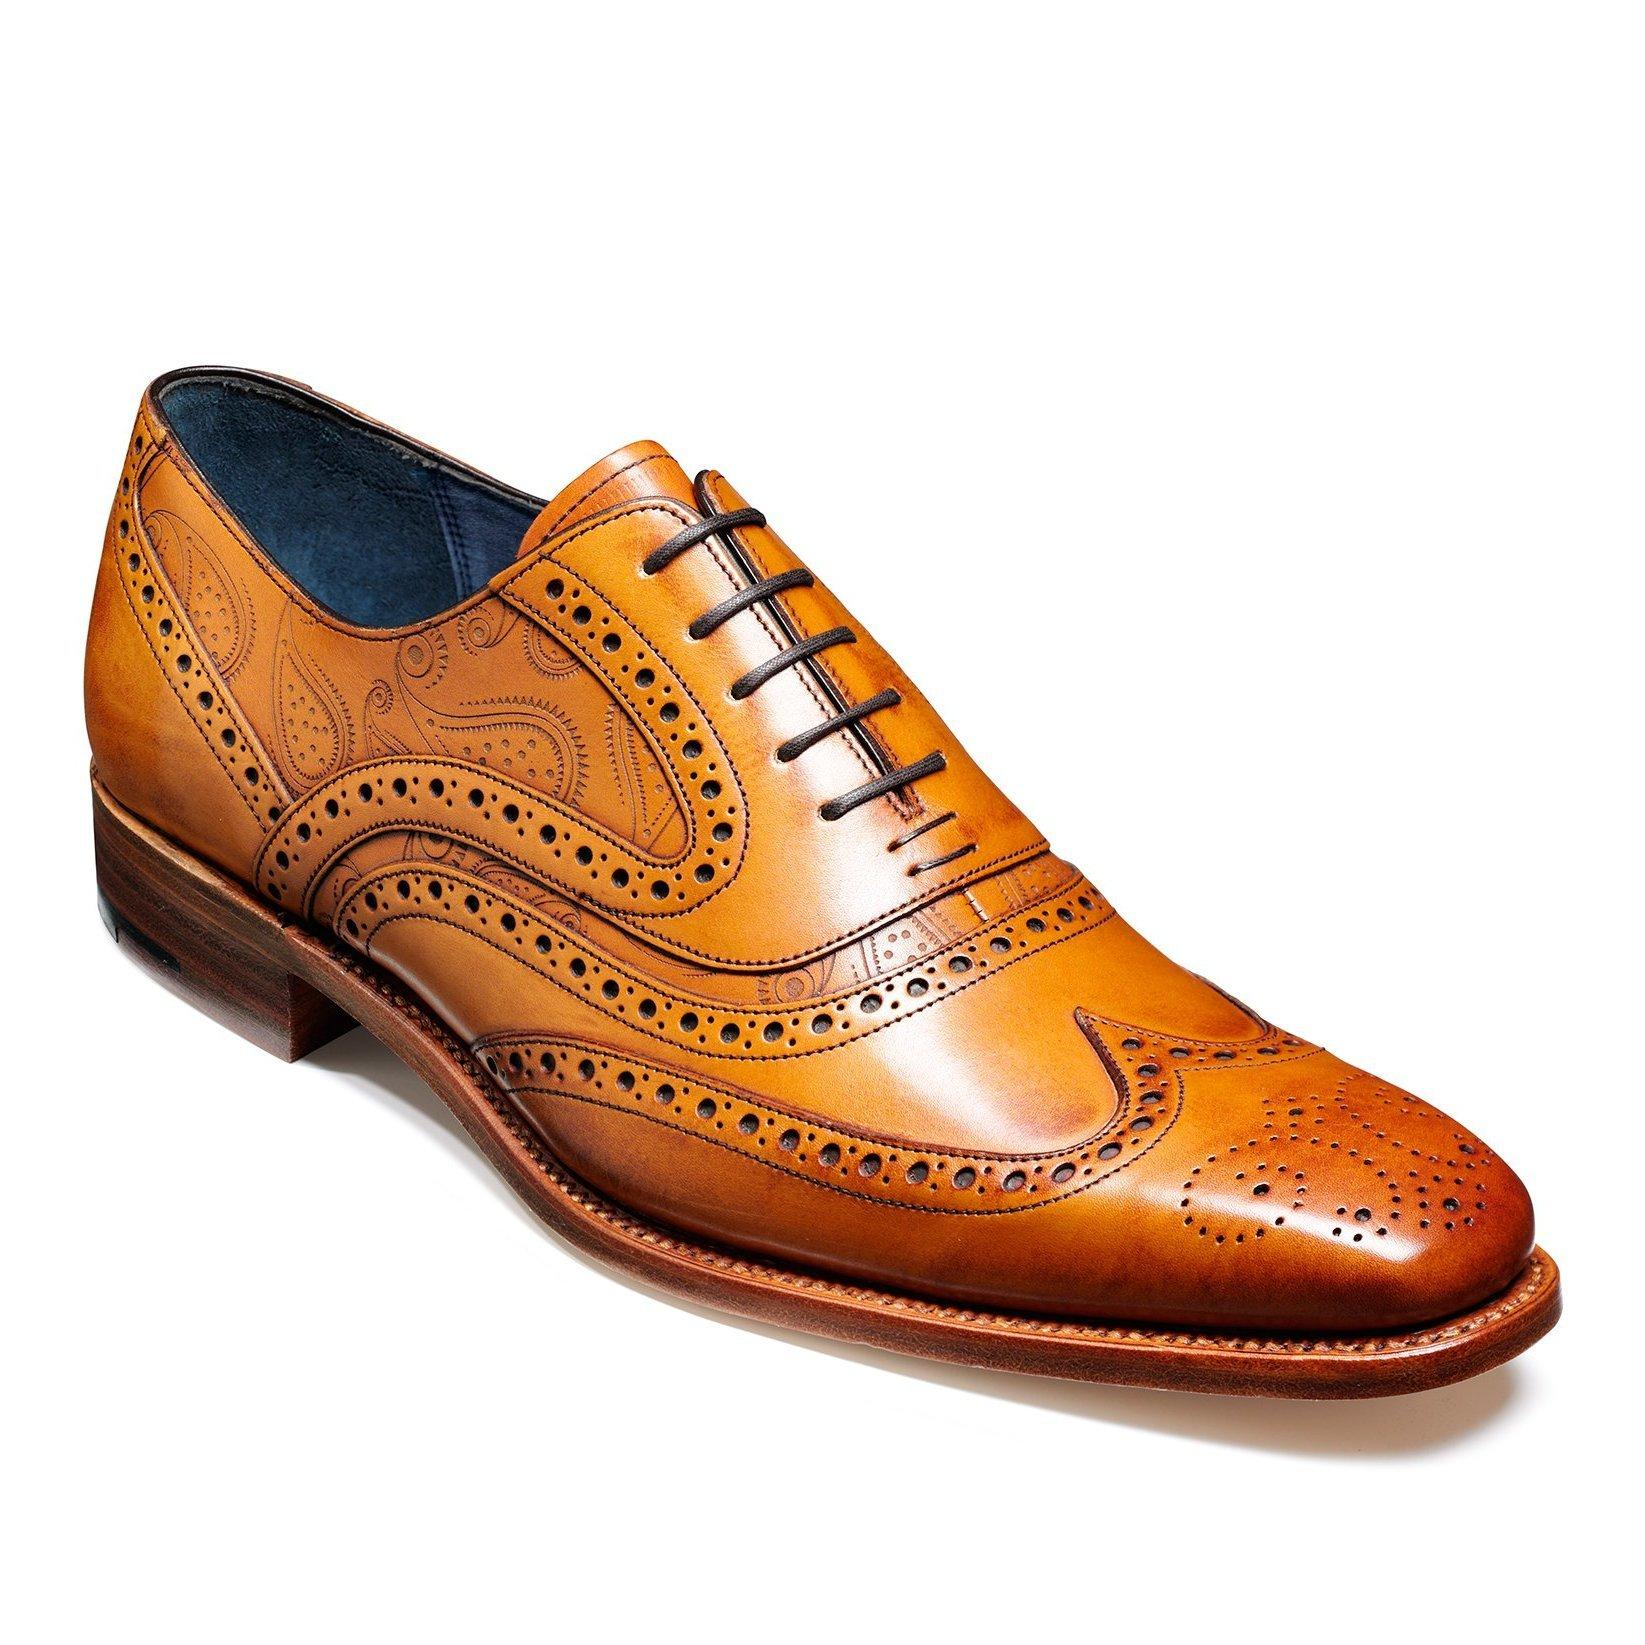 Mens Barker Shoes, McClean Brogue, Cedar Calf, Paisley Pattern